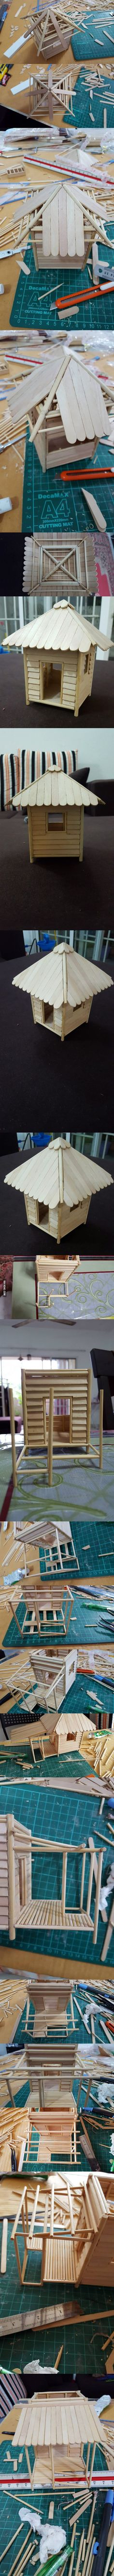 Step by Step to Make a Mini Beach Hut Part 2